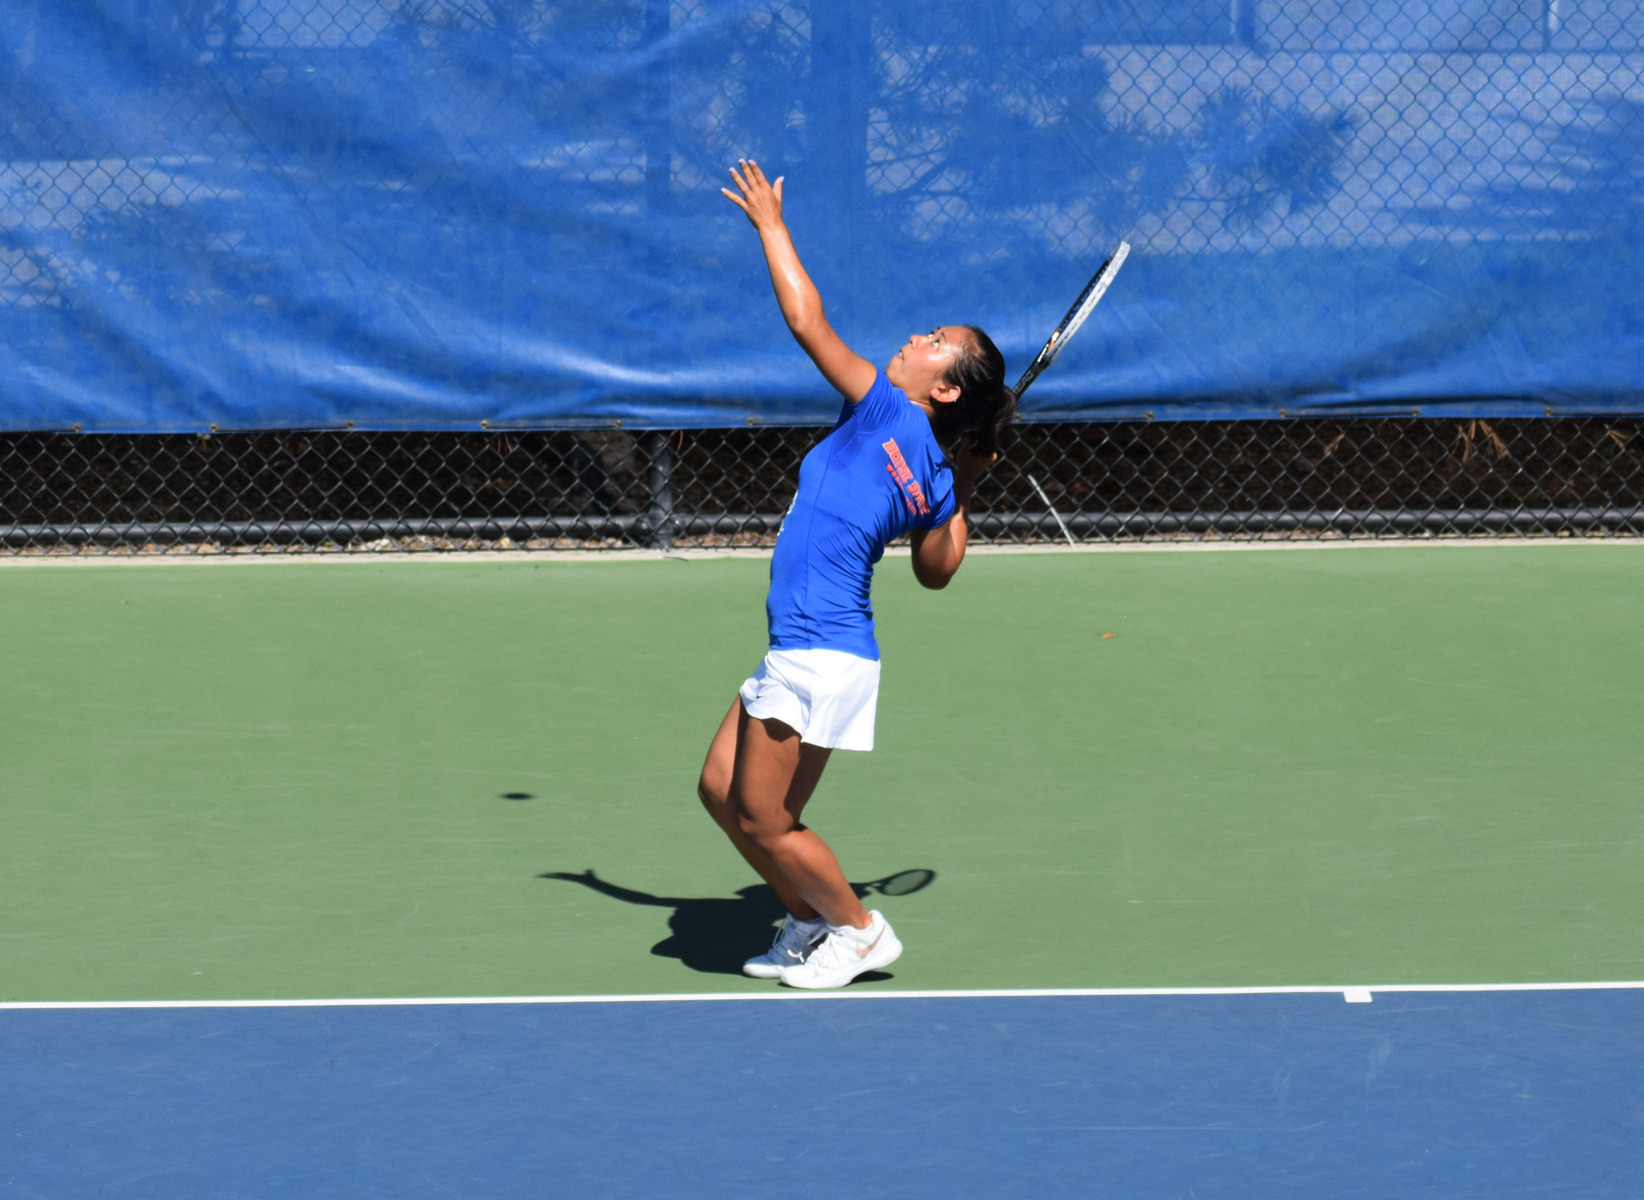 Bobbi Oshiro won both her doubles and singles matches.